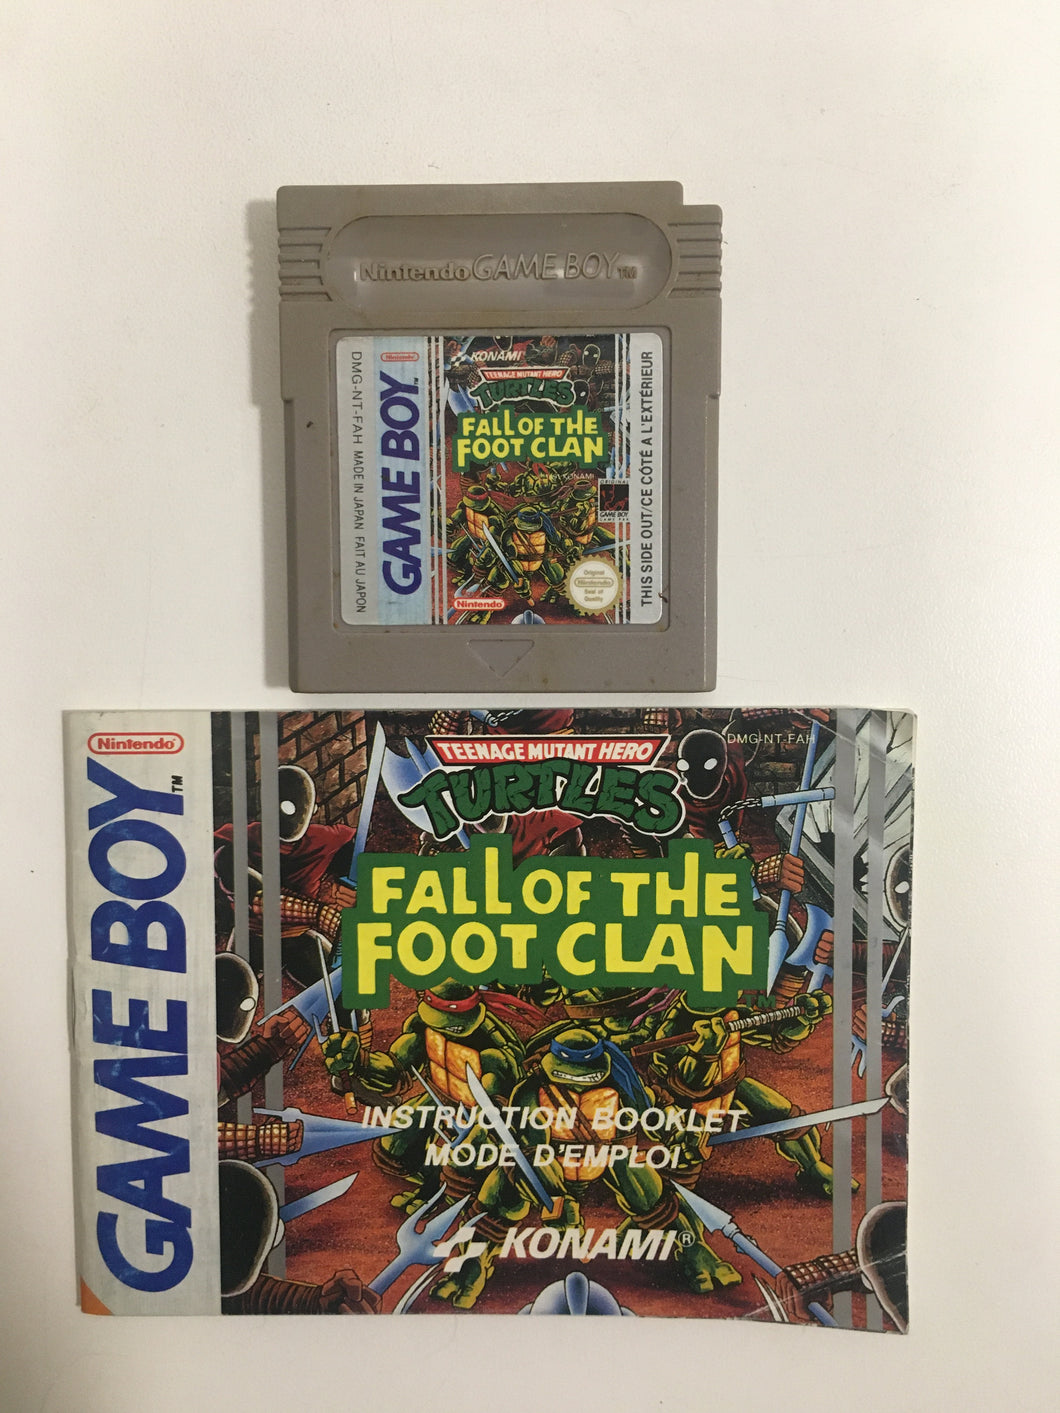 turtles fall of the foot clan Nintendo Game boy FAH avec notice